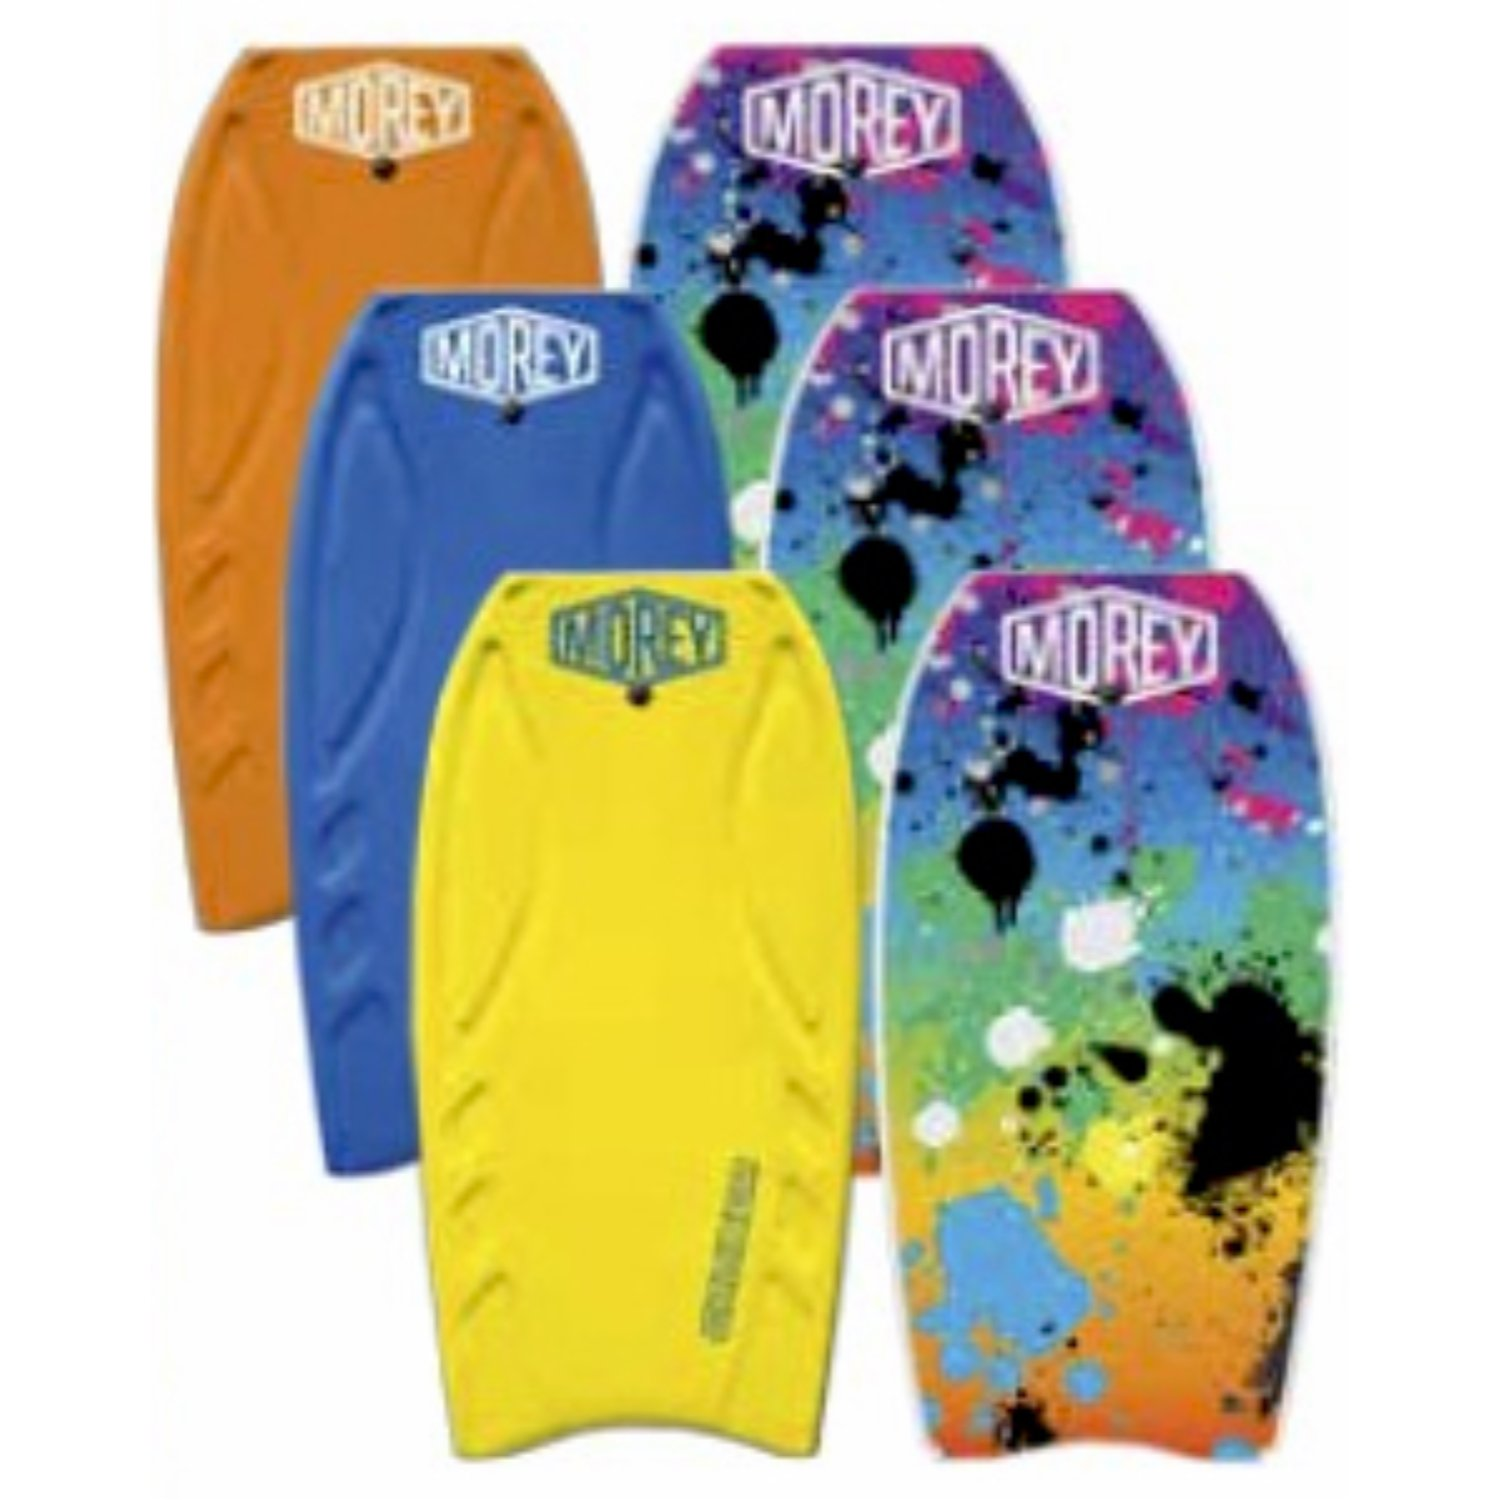 "Morey Cruiser 42.5"" Body Board"